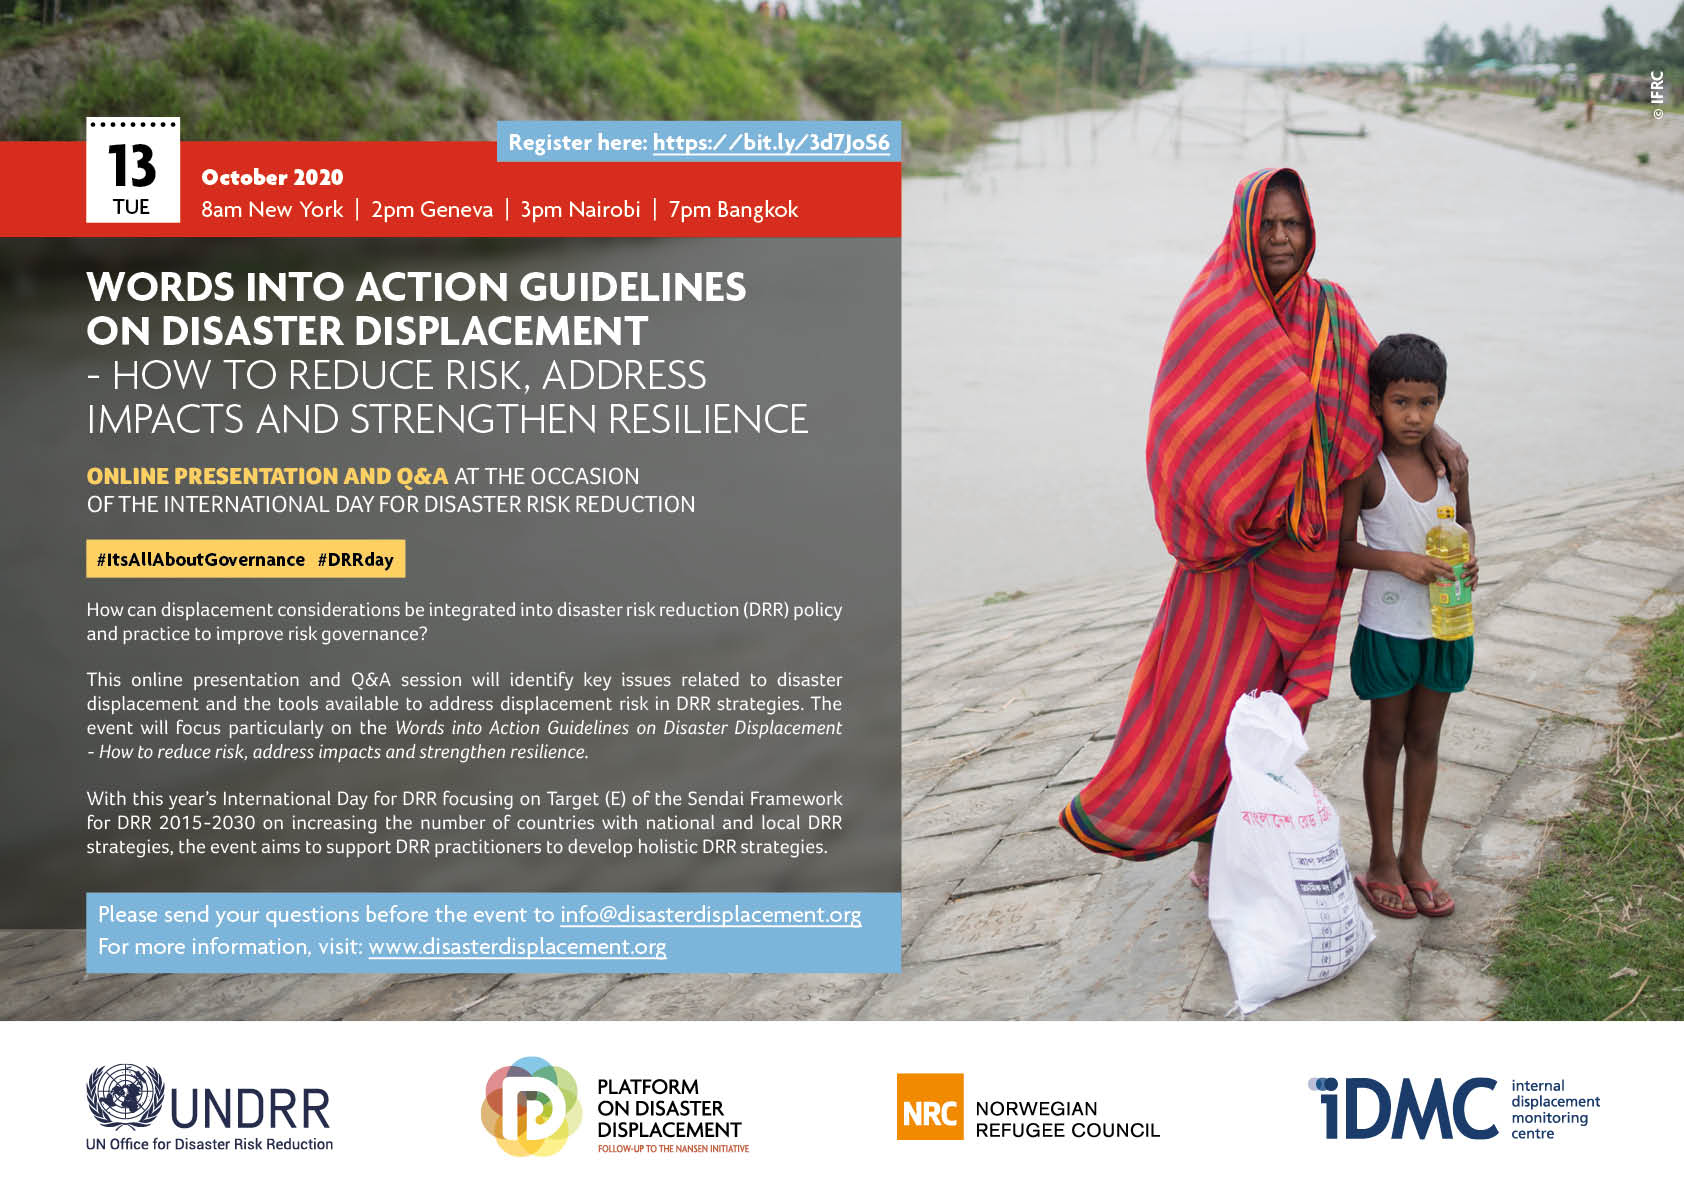 Online Presentation And Q&A | The Words Into Action Guidelines On Disaster Displacement – How To Reduce Risk, Address Impacts And Strengthen Resilience